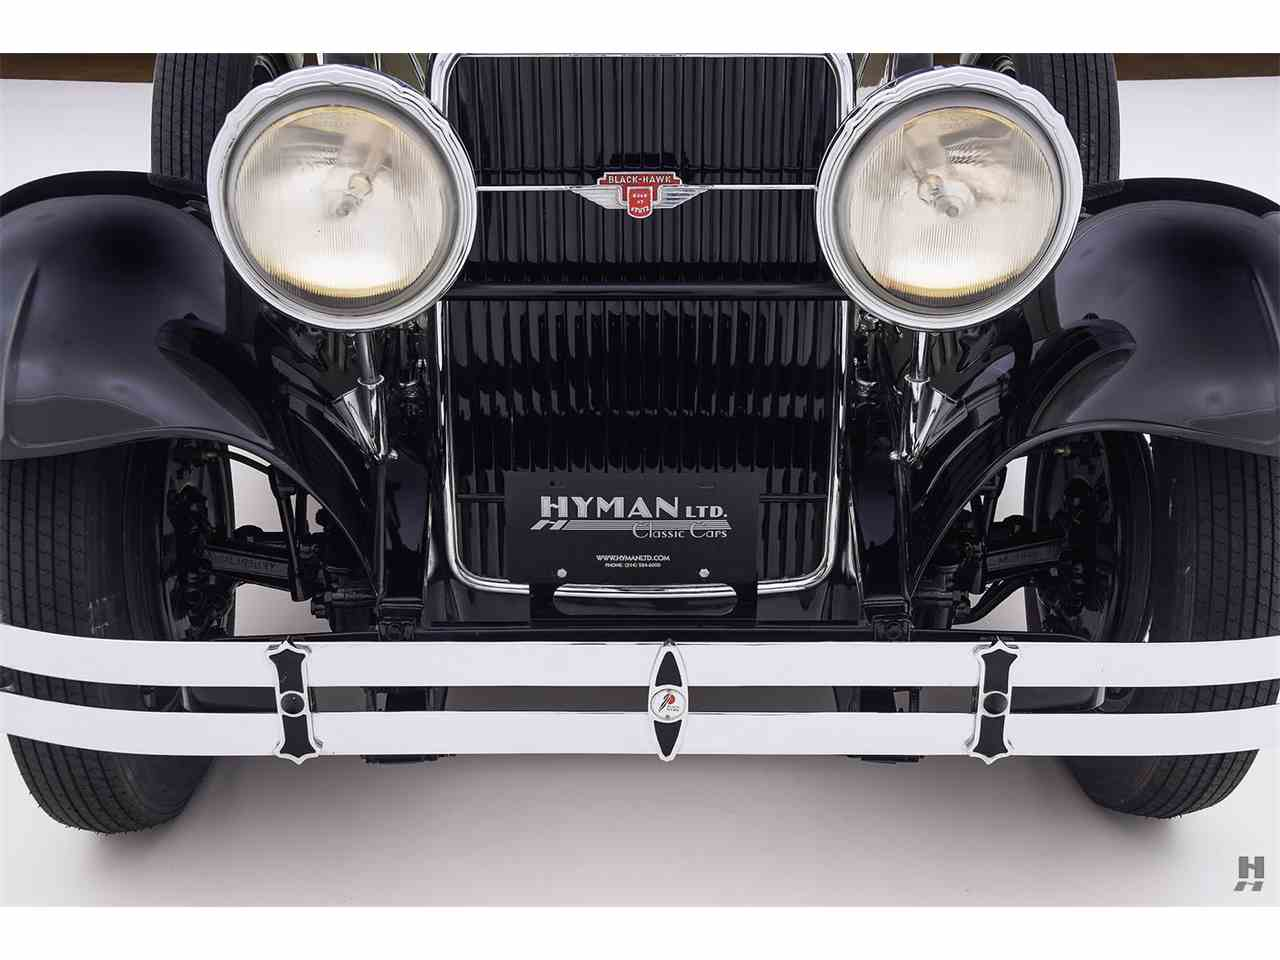 Large Picture of Classic '29 Stutz Blackhawk - $137,500.00 Offered by Hyman Ltd. Classic Cars - JKFP